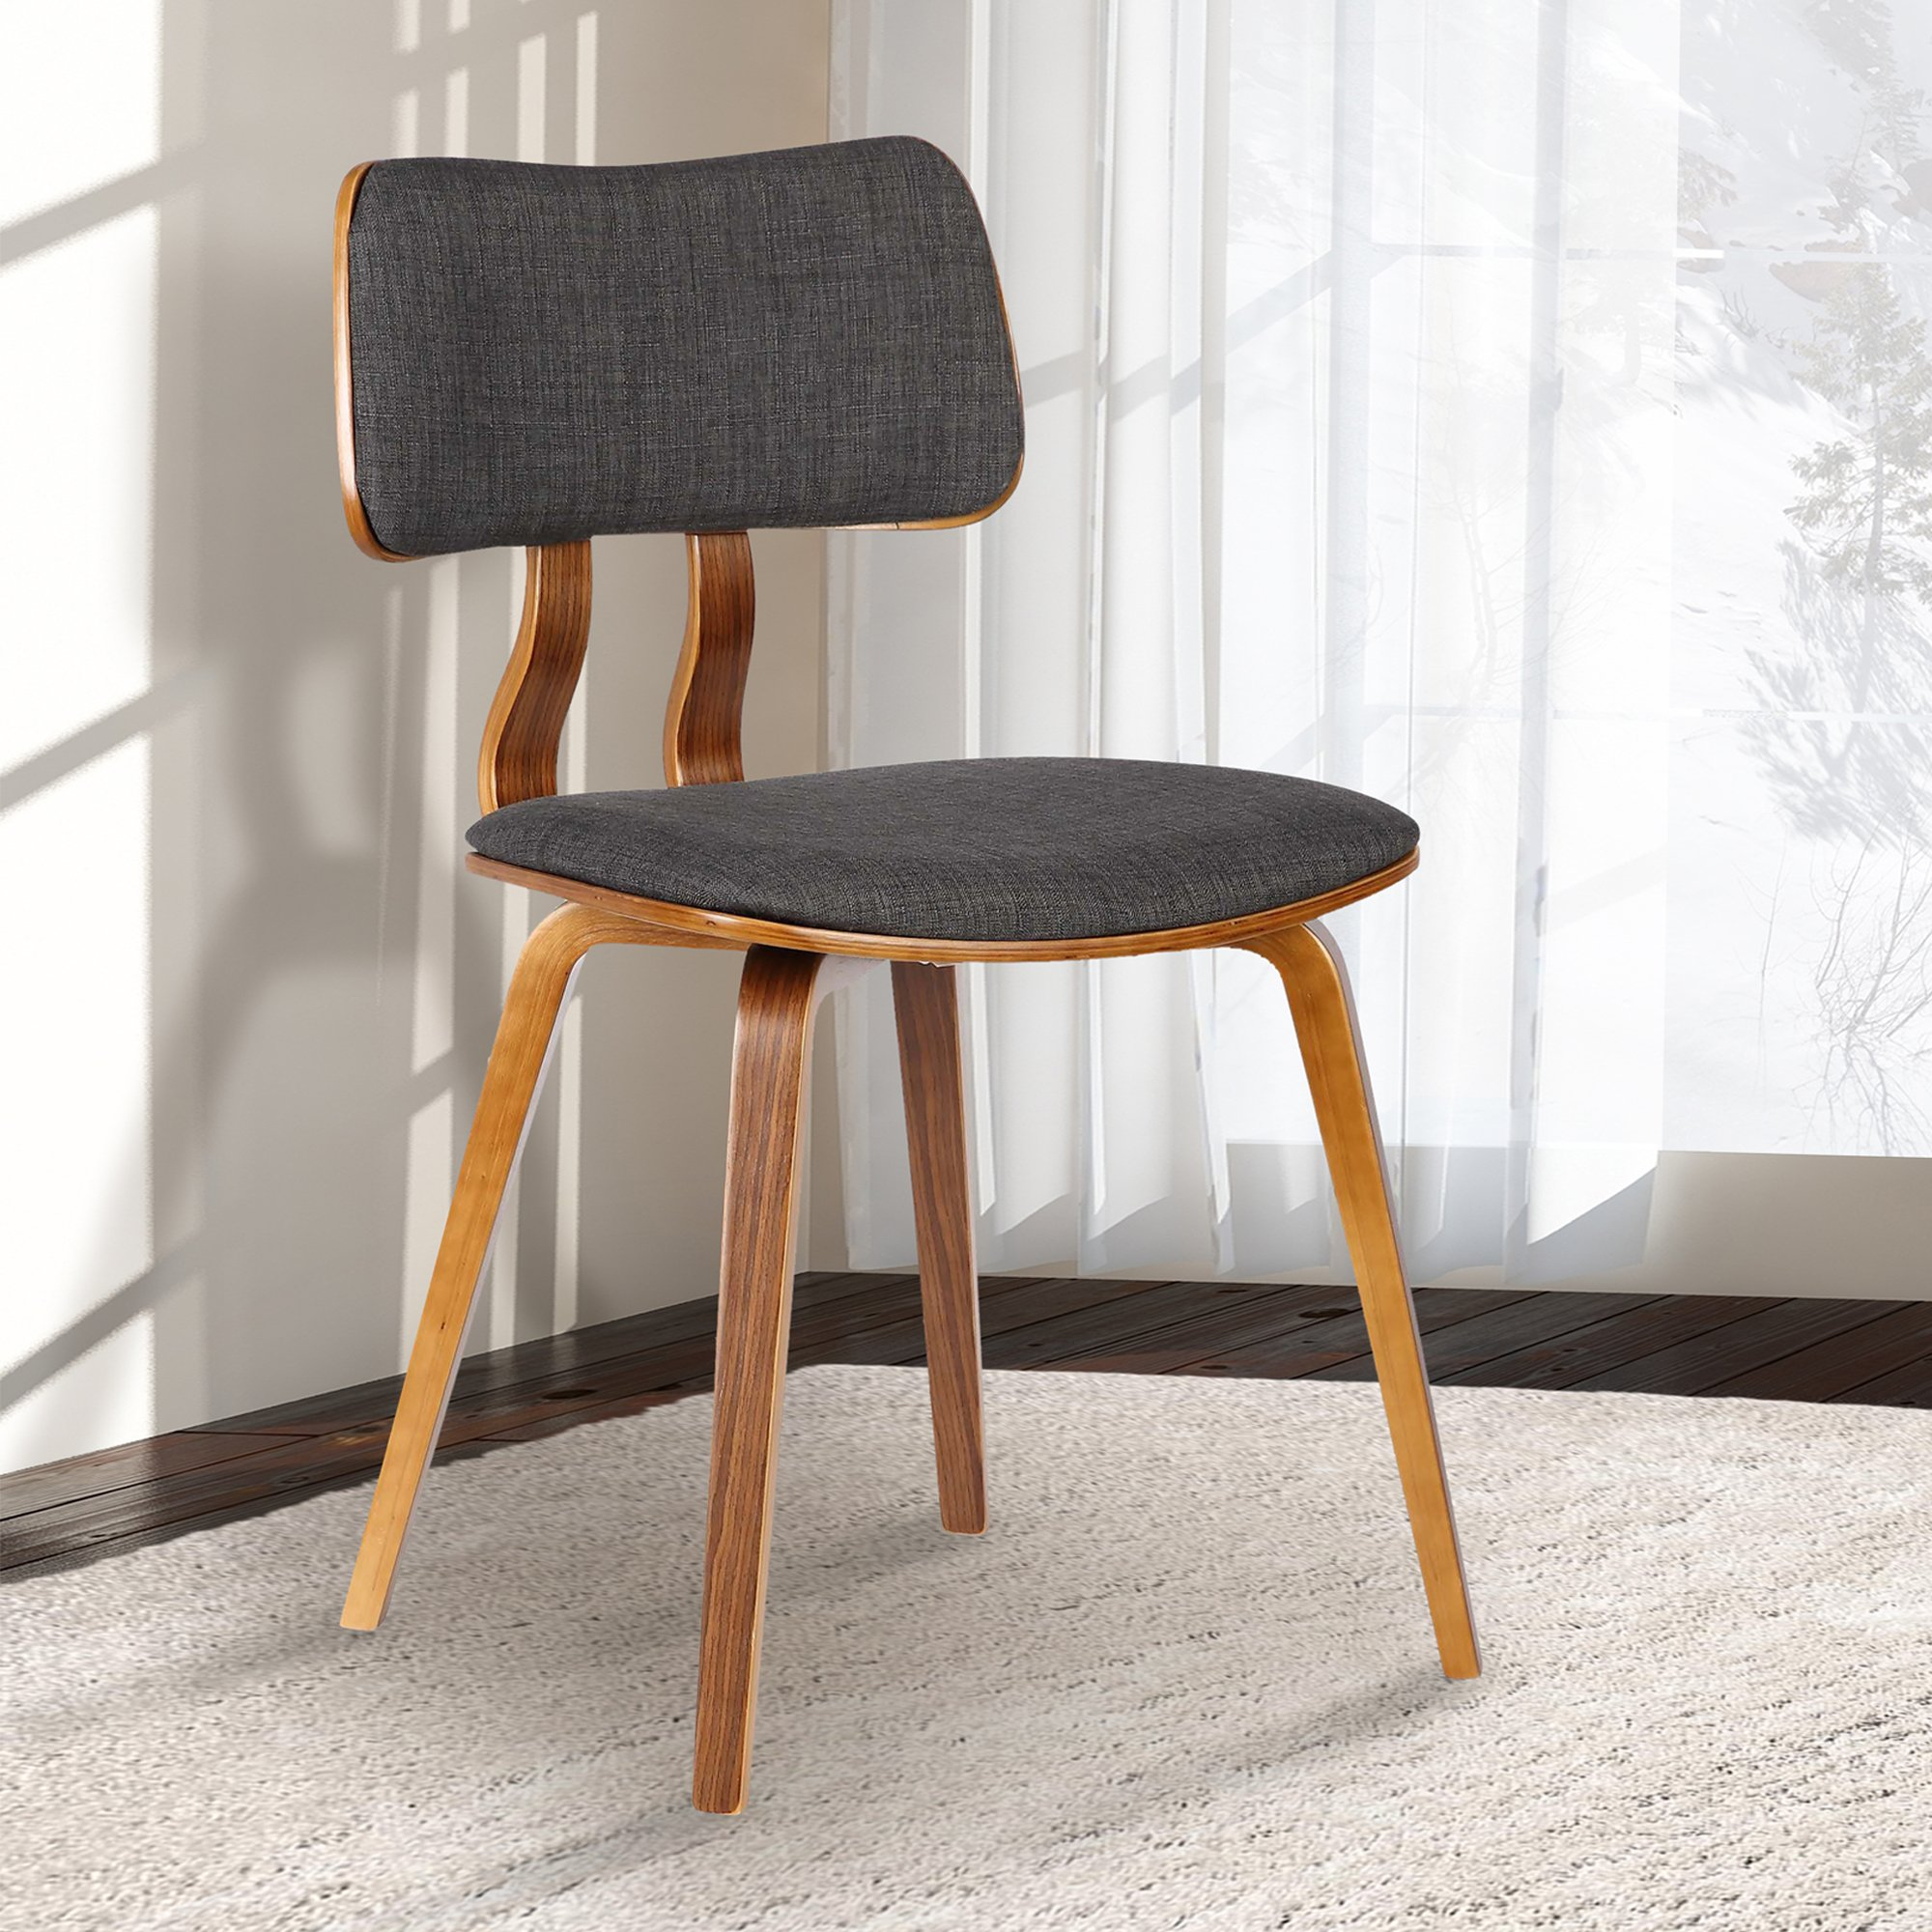 Armen Living LCJASIWACH Jaguar Dining Chair in Charcoal Fabric and Walnut Wood Finish by Armen Living